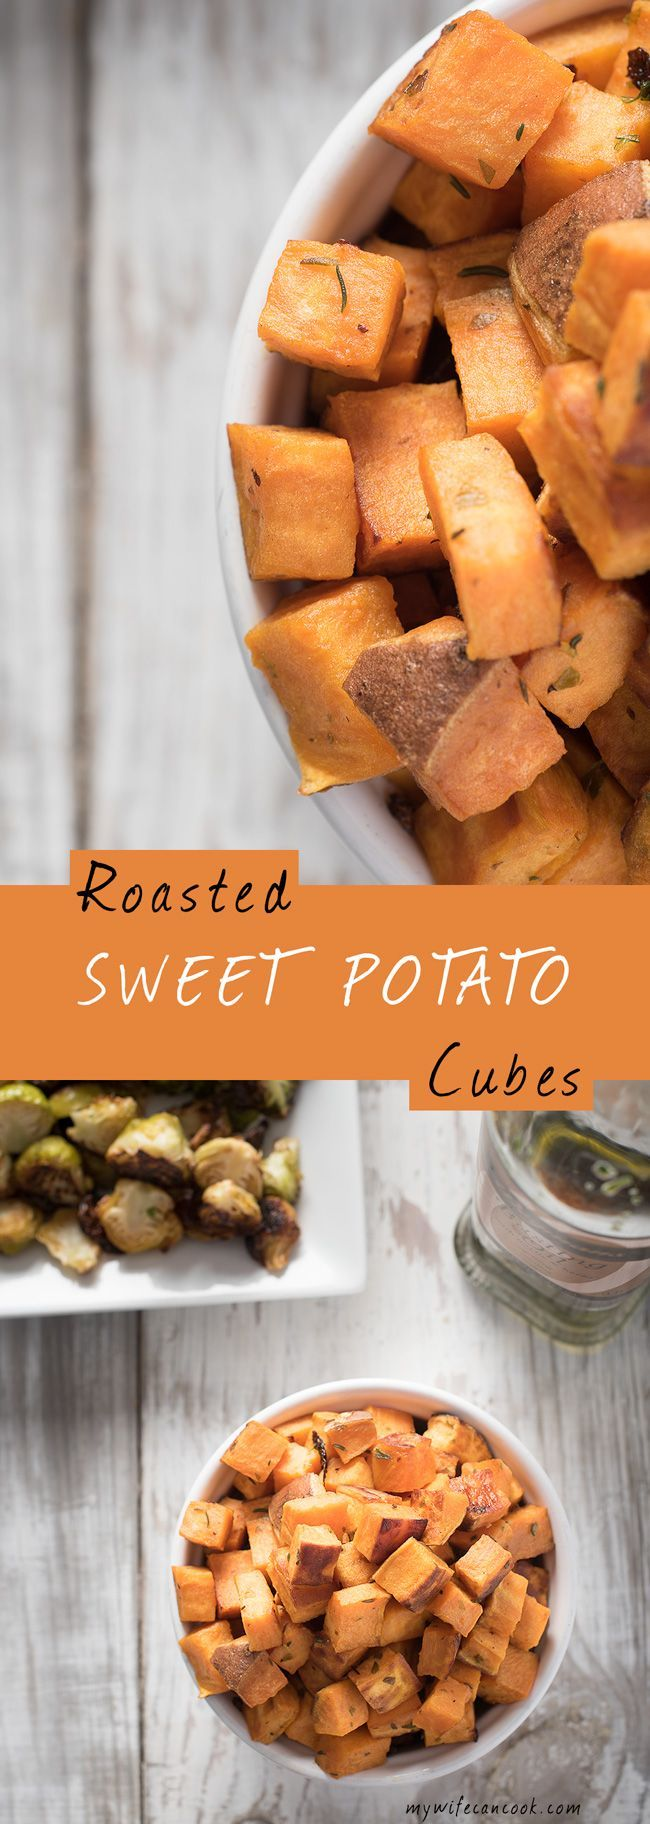 Roasted Sweet Potato Cubes Recipe Roasted Sweet Potatoes Sweet Potato Oven Roasted Sweet Potato Cubes